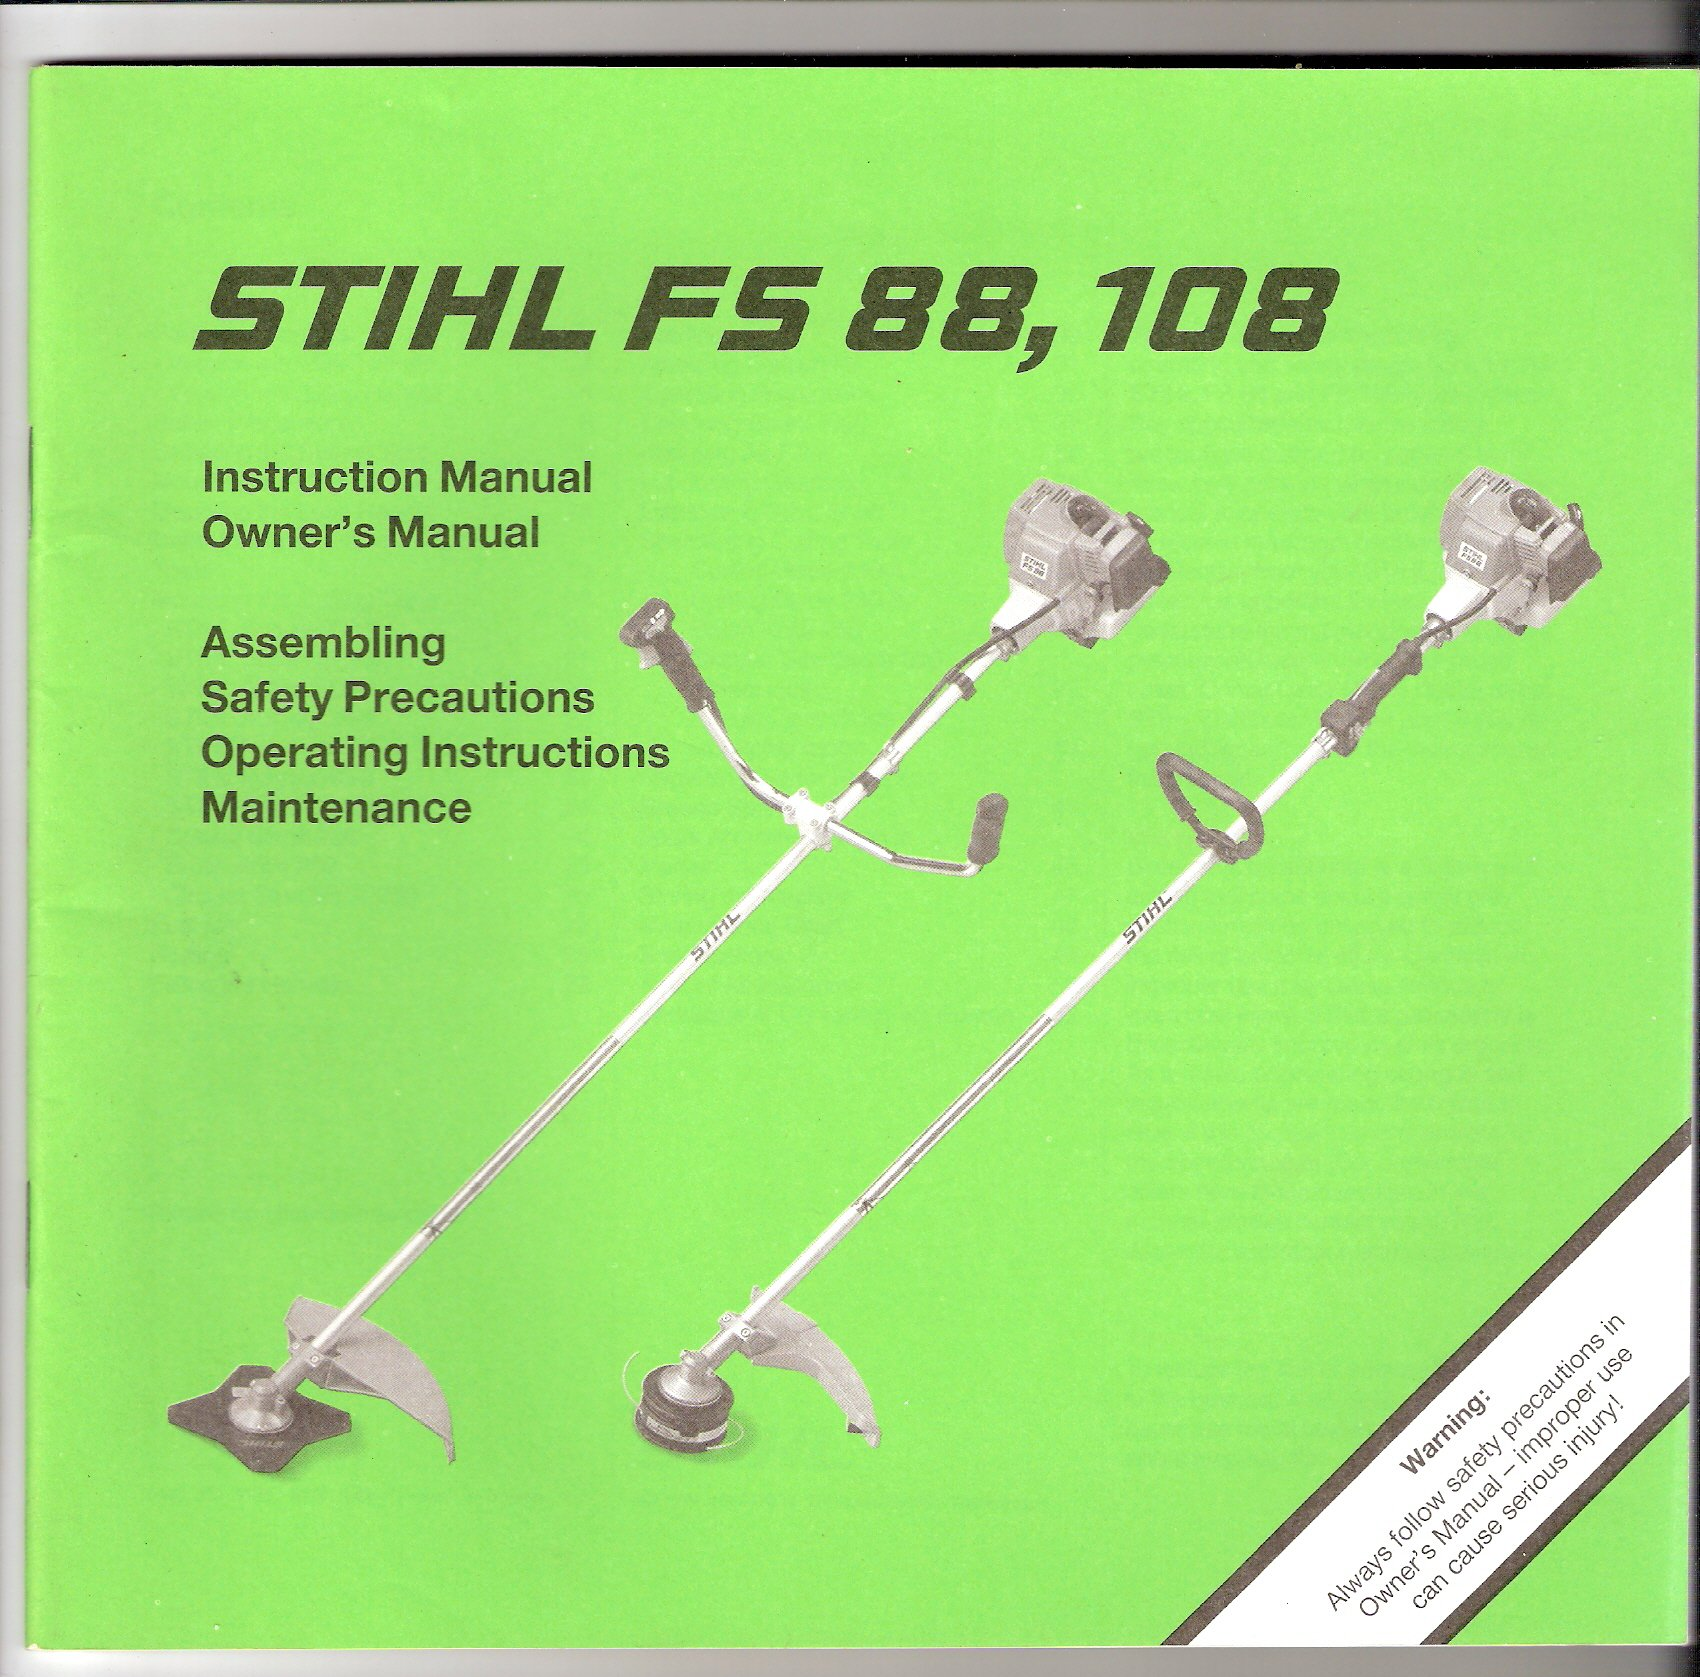 Stihl Instruction Manual Business, Office & Industrial Other Tractor Publications